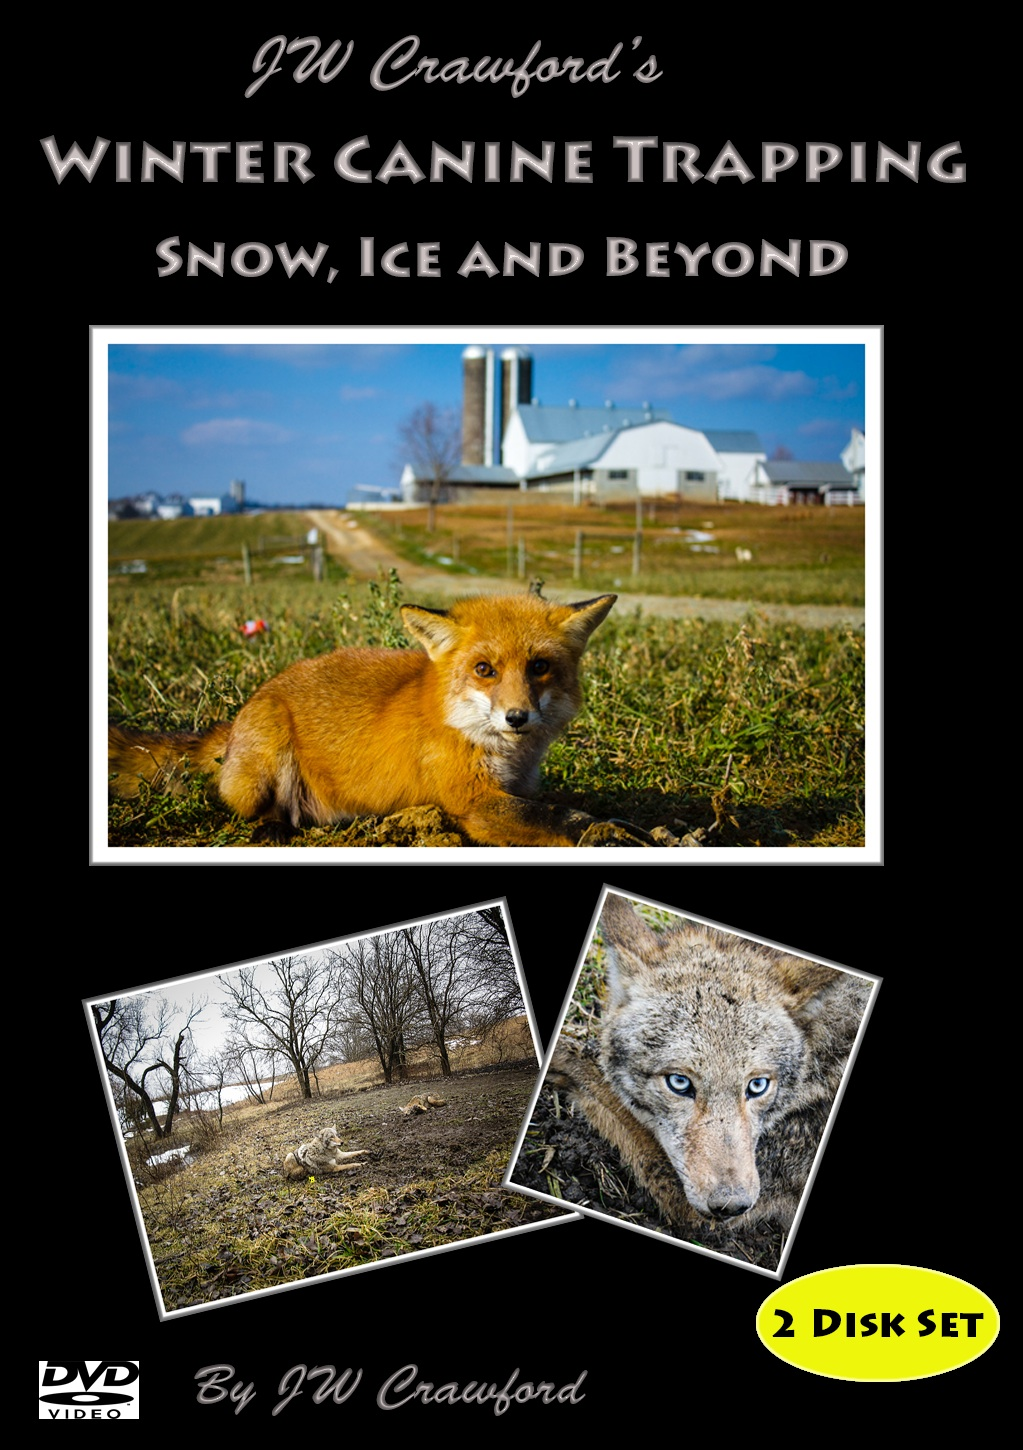 Winter Canine Trapping – Snow, Ice and Beyond - 2 Disc Set DVD #wcanine13m